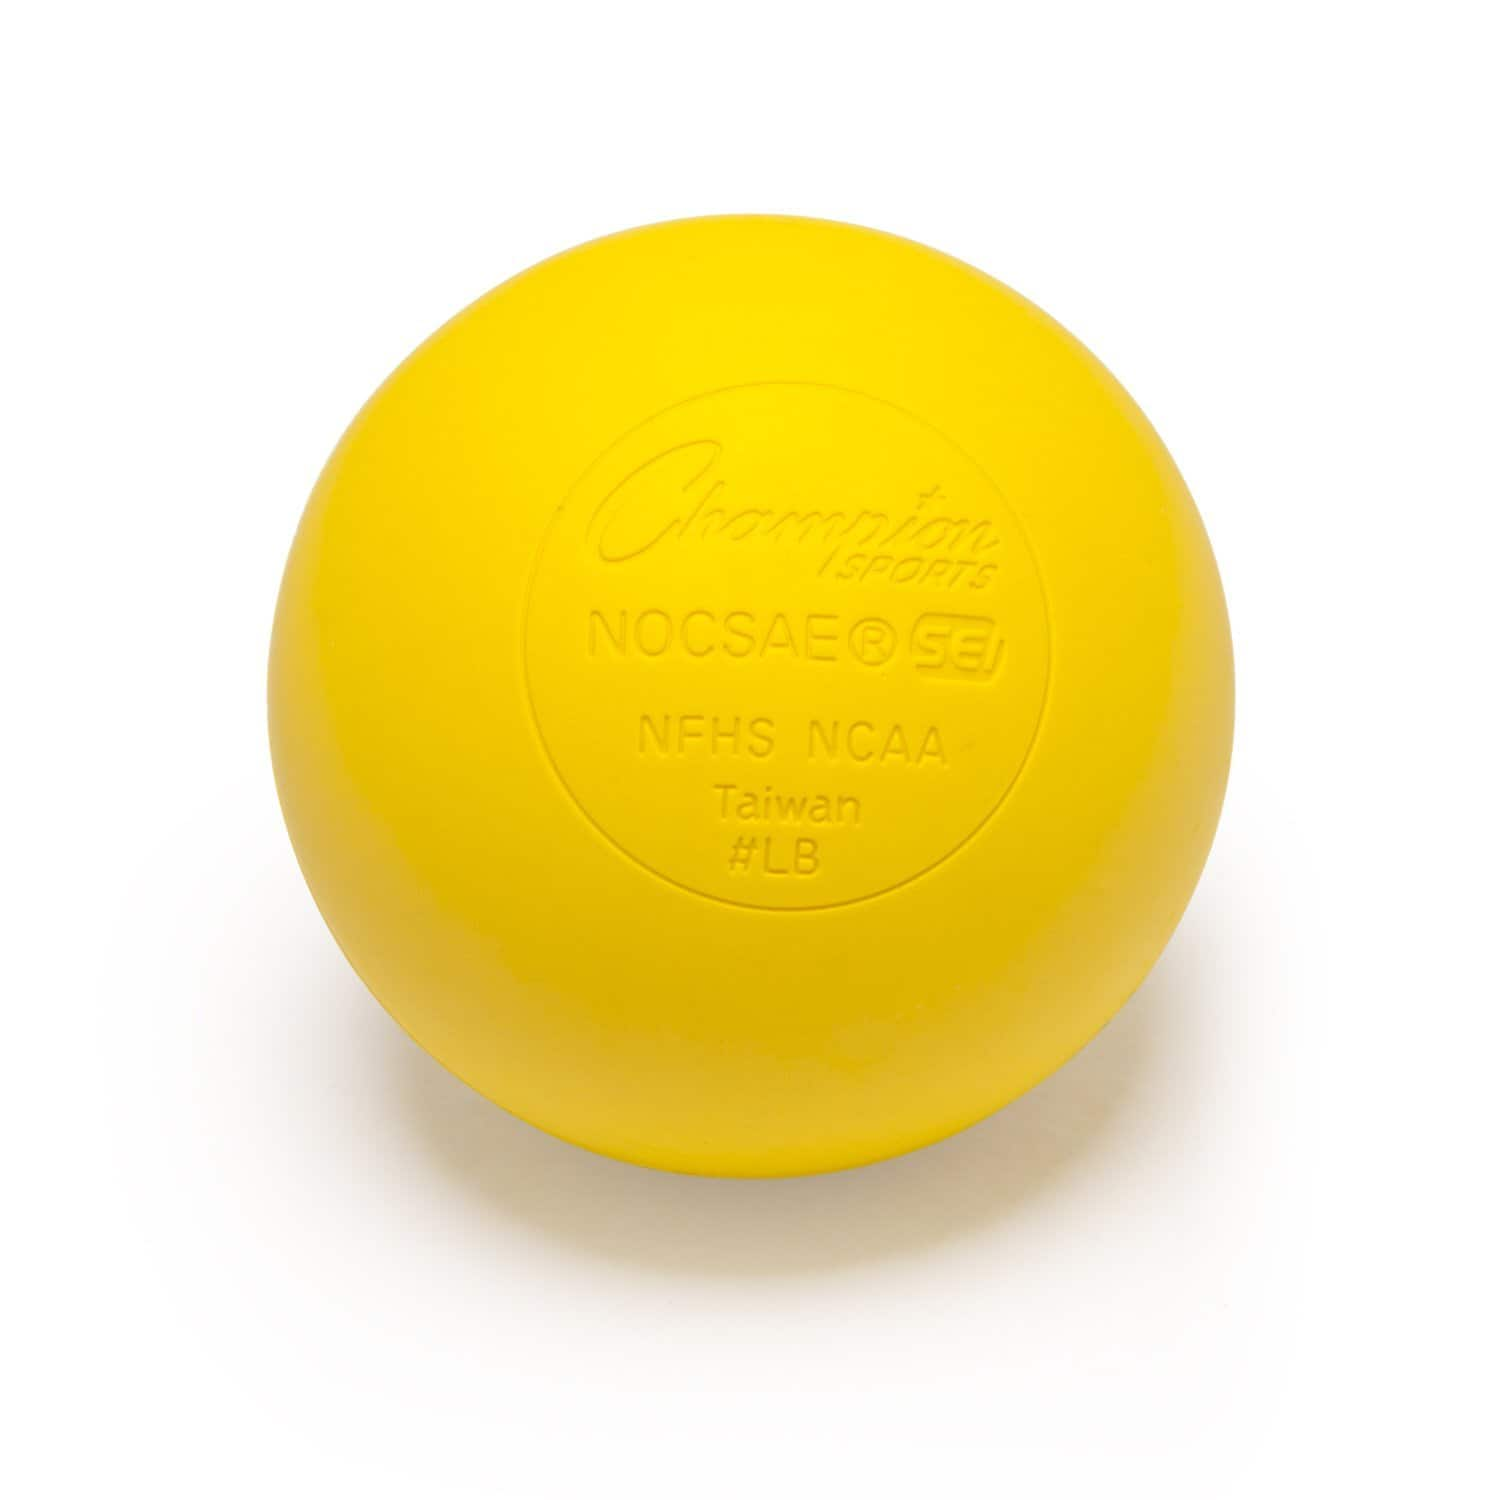 12-Pack Champion Sports Official Lacrosse Balls (Yellow) $12.25 w/ S&S or Prime + Free S&H ~ Amazon